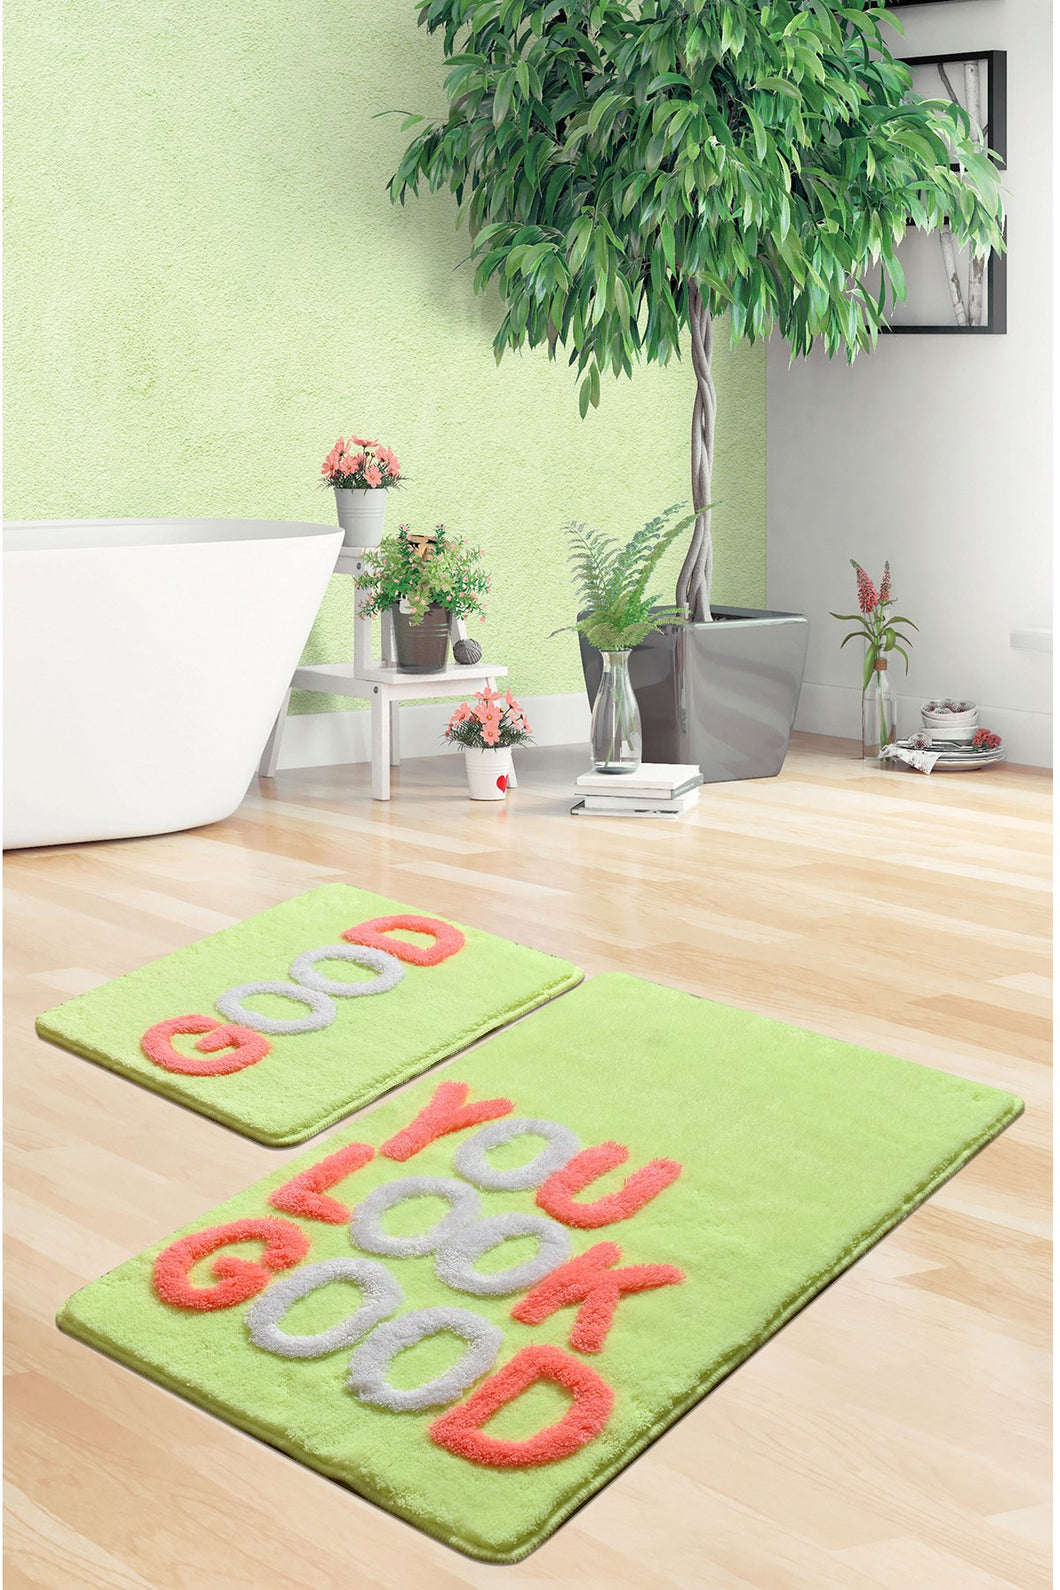 Antdecor Good Neon Set Of 2 Bath Rug 60X100 Cm - 50X60 Cm